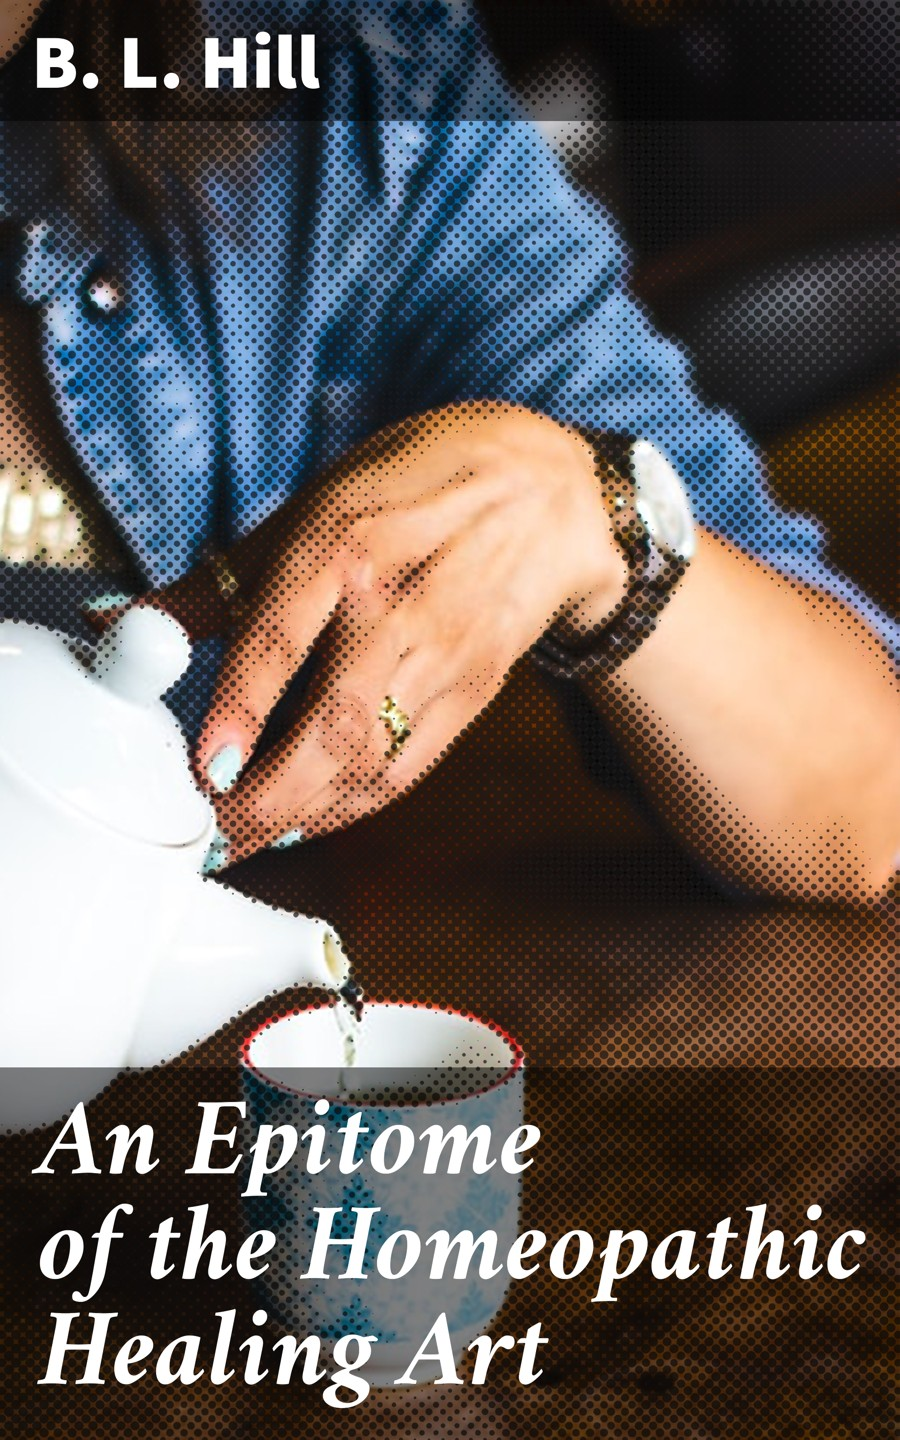 B. L. Hill An Epitome of the Homeopathic Healing Art the denver homeopathic college